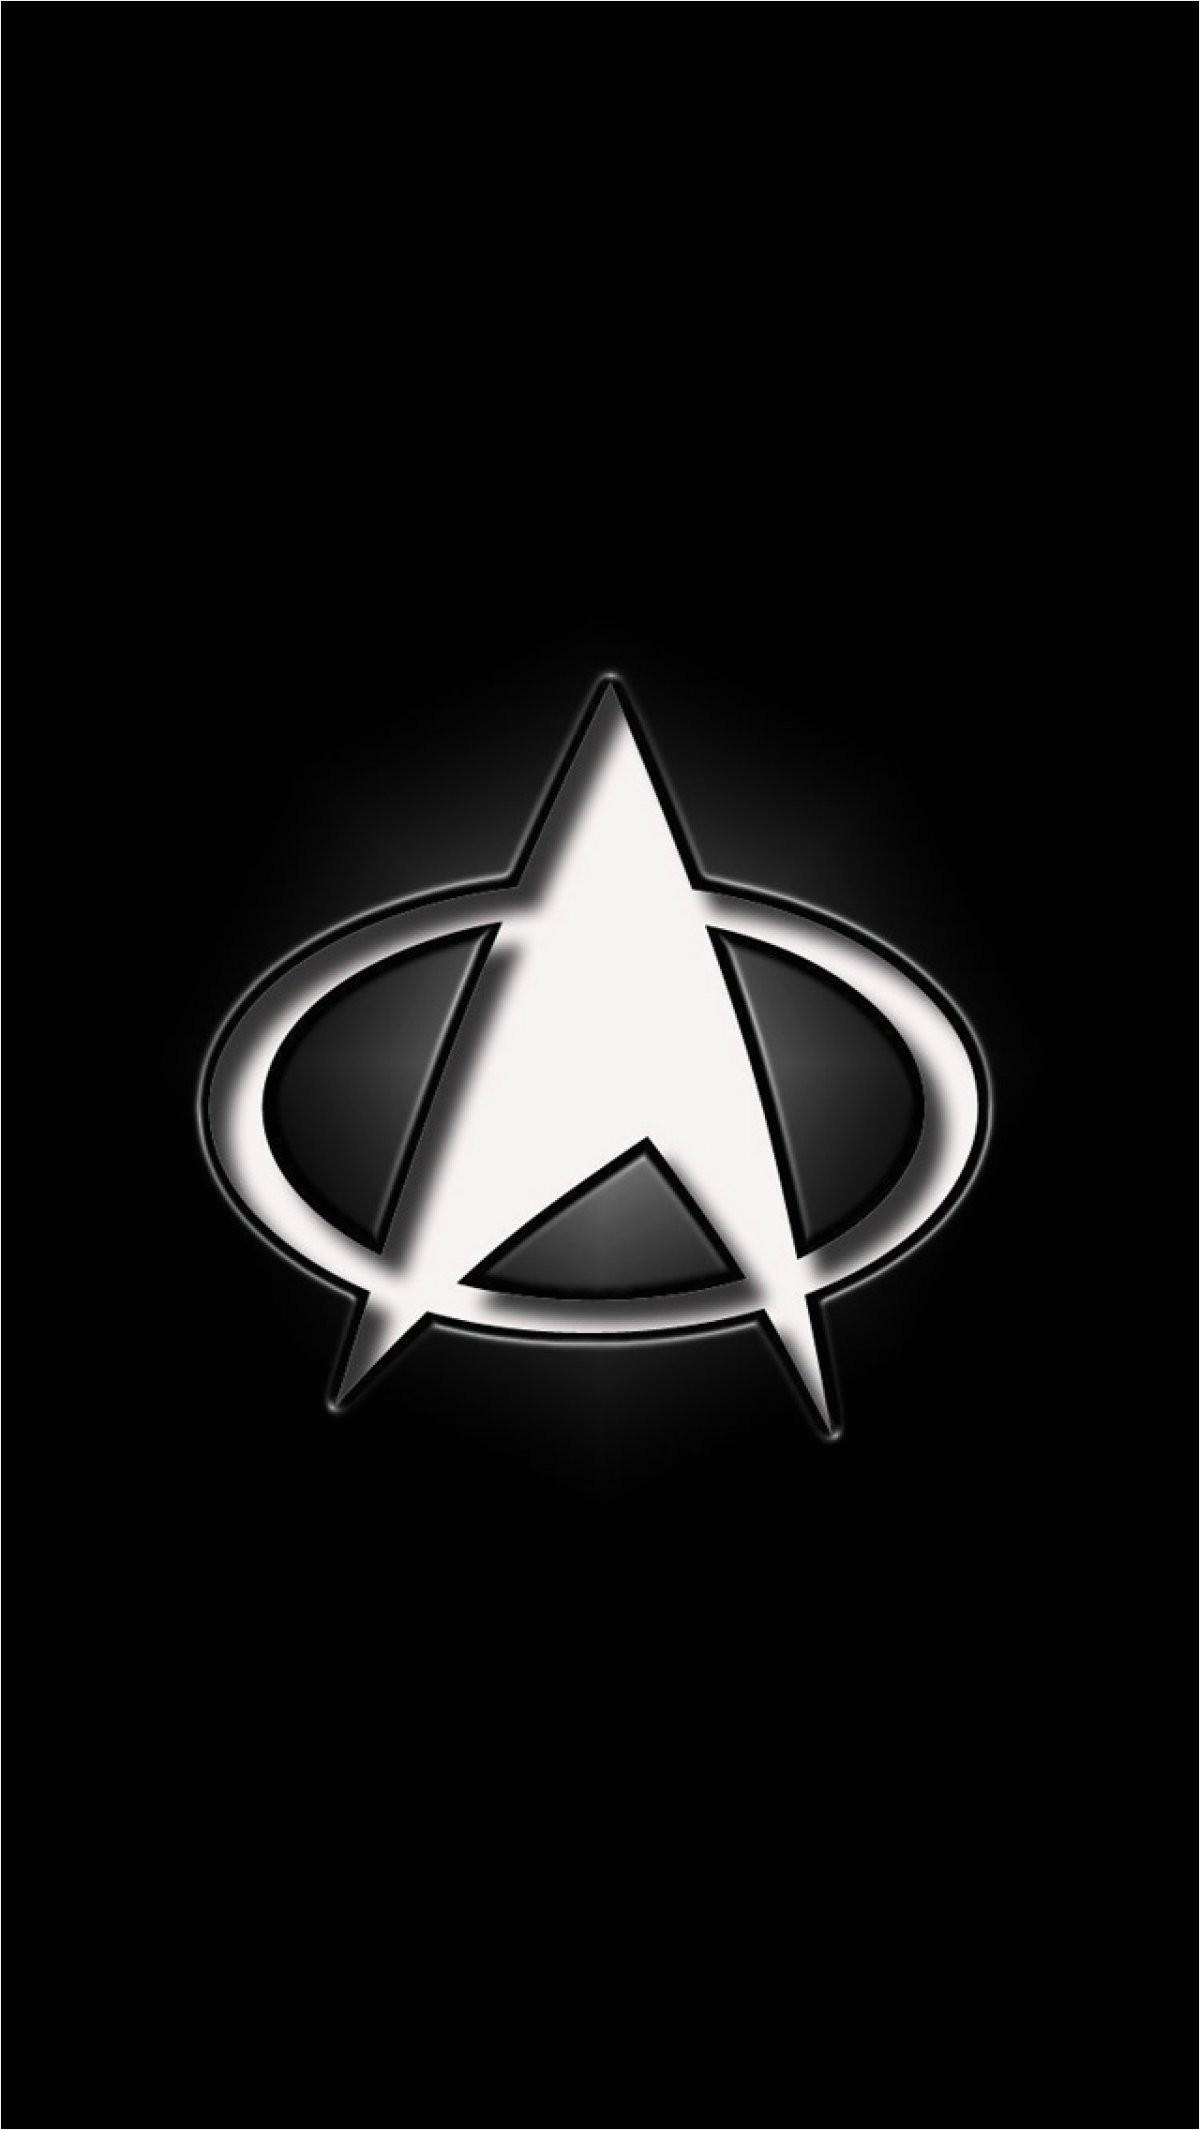 Star Trek Mobile Wallpapers Wallpaper Cave